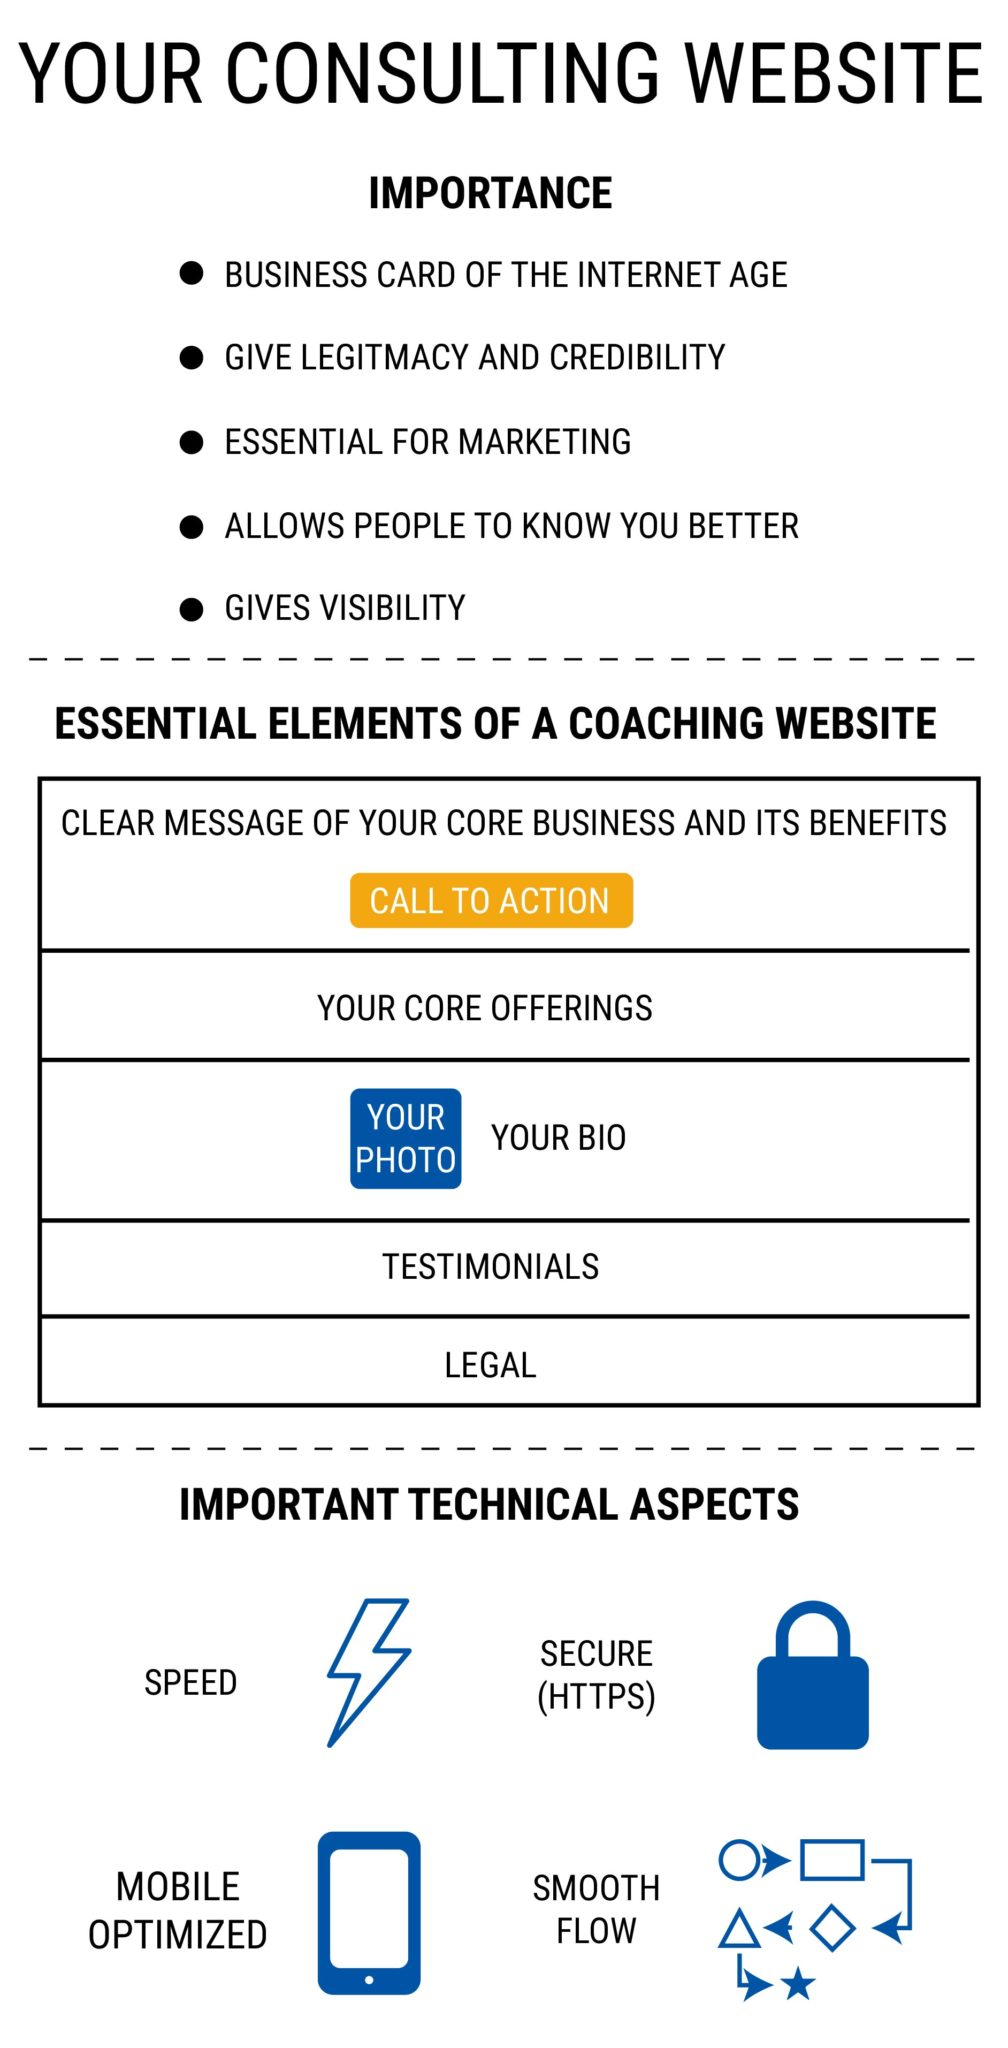 YOUR CONSULTING WEBSITE